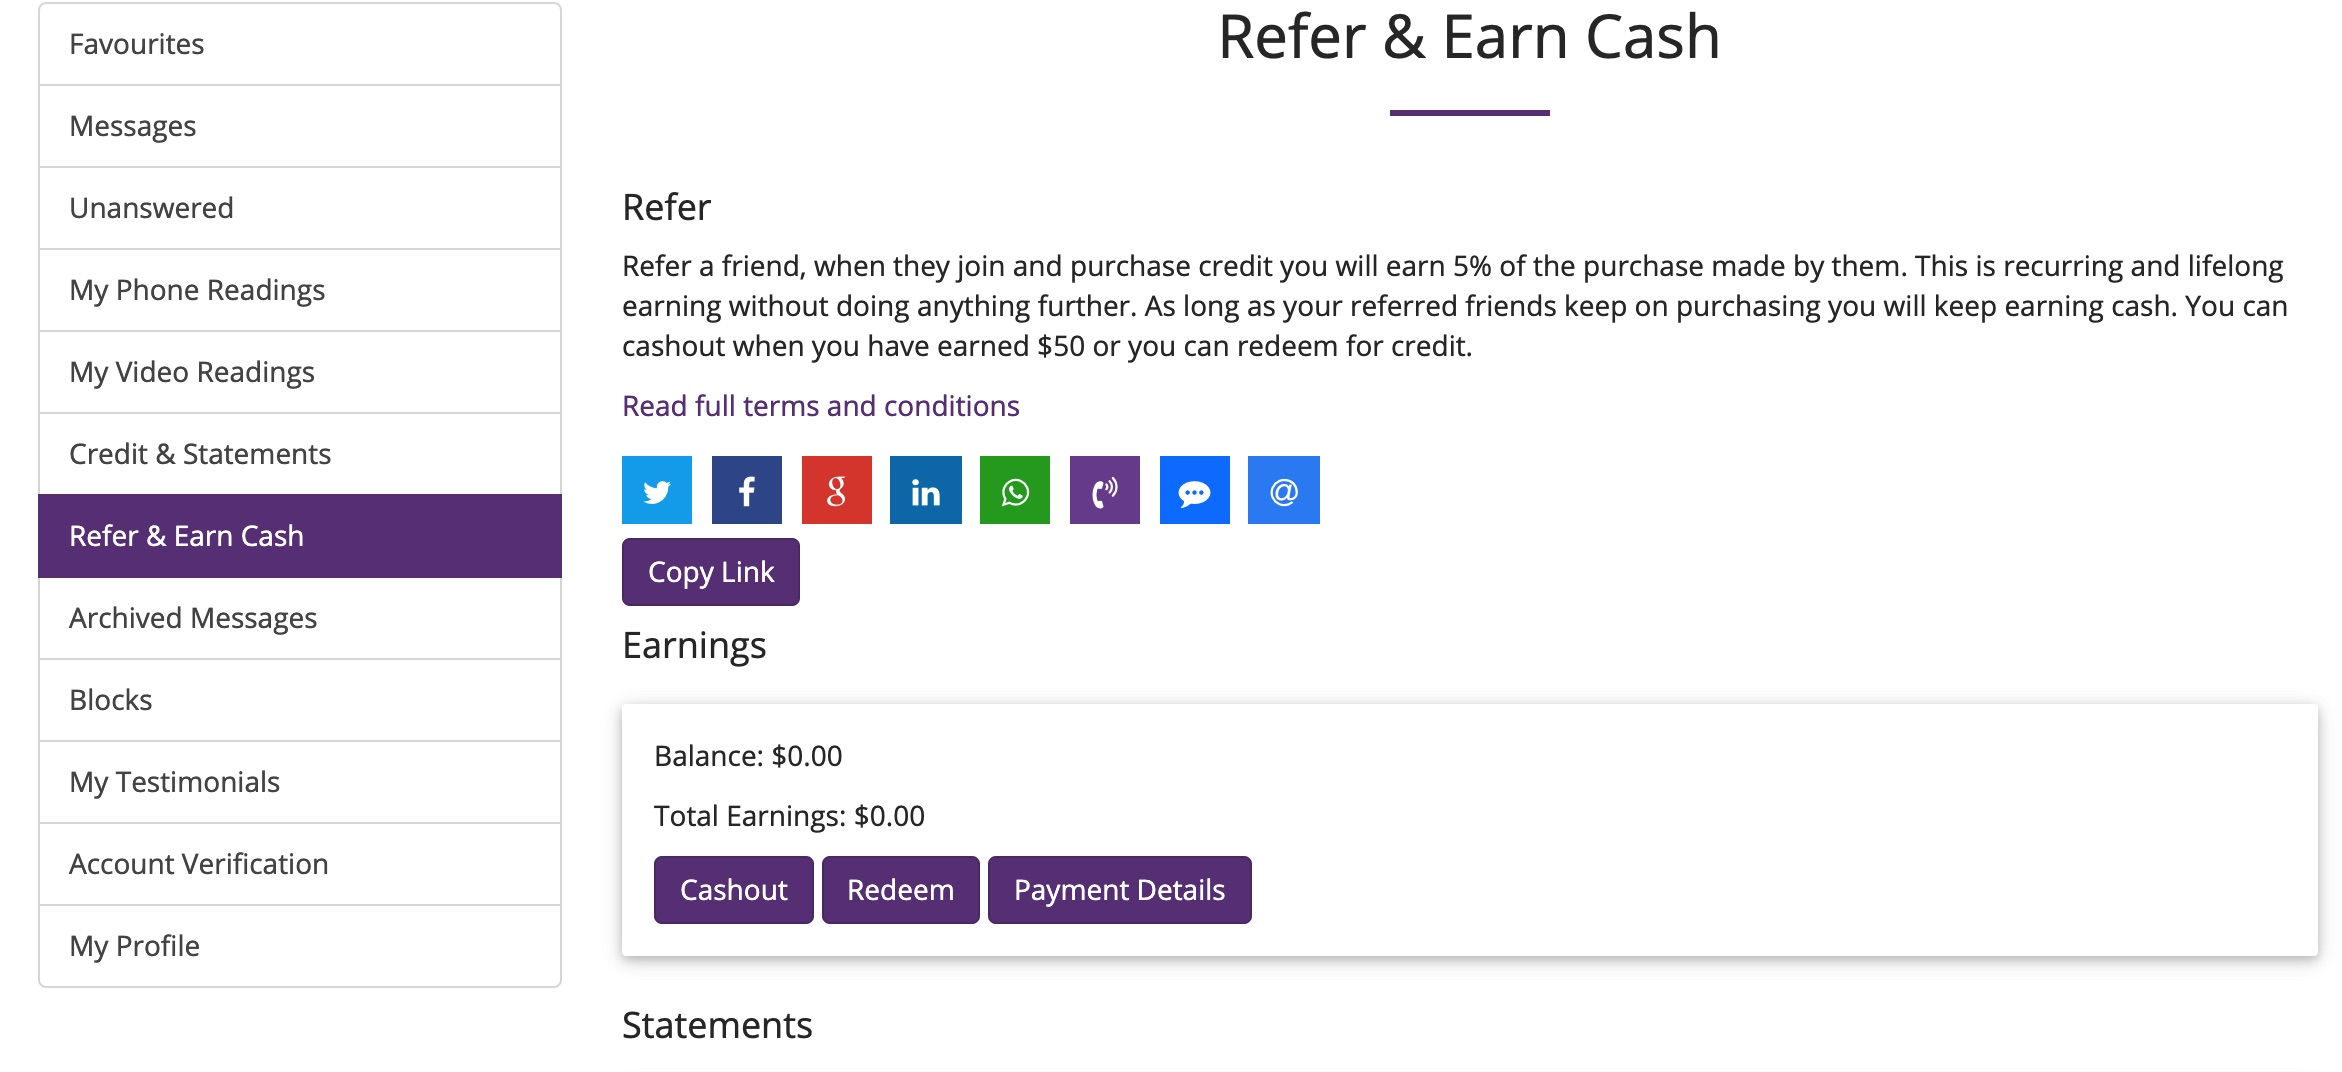 Refer And Earn Cash Web